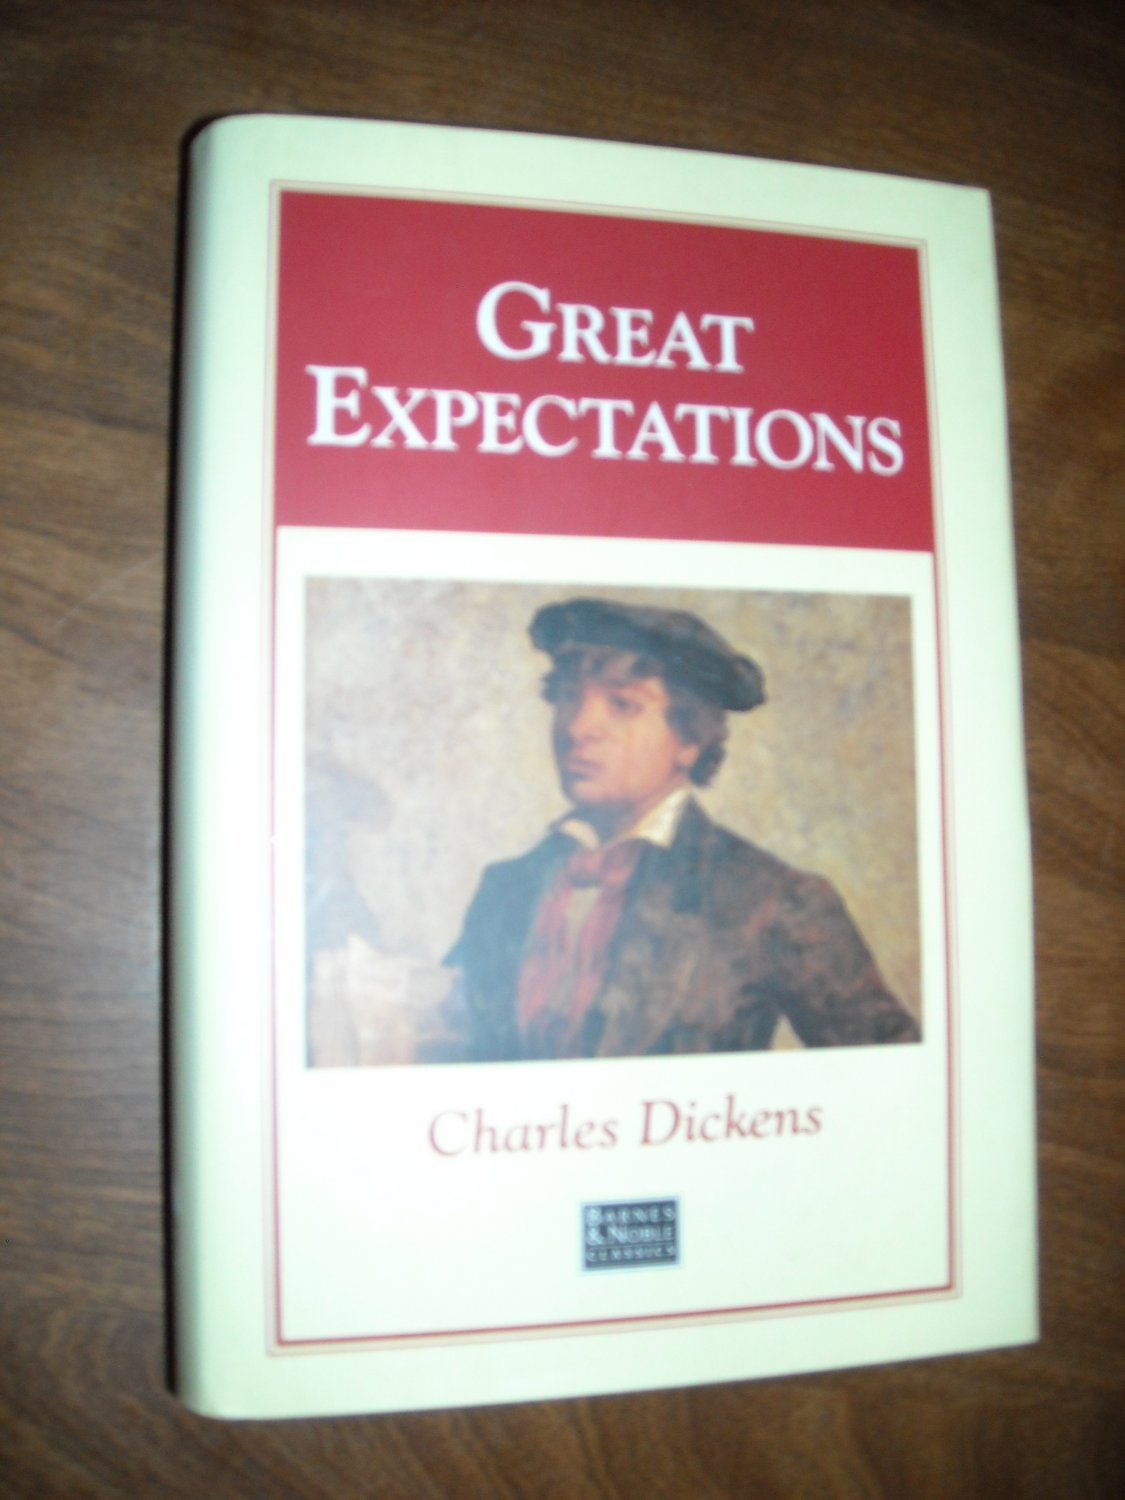 the illusion versus truth in charles dickens great expectations Great expectations themeof the major themes from charles dickens novel 'great expectations' to be discussed as to their importance concerning its structure, i have selected 'love' in the context of human relationships, 'isolation' and finally 'redempt.